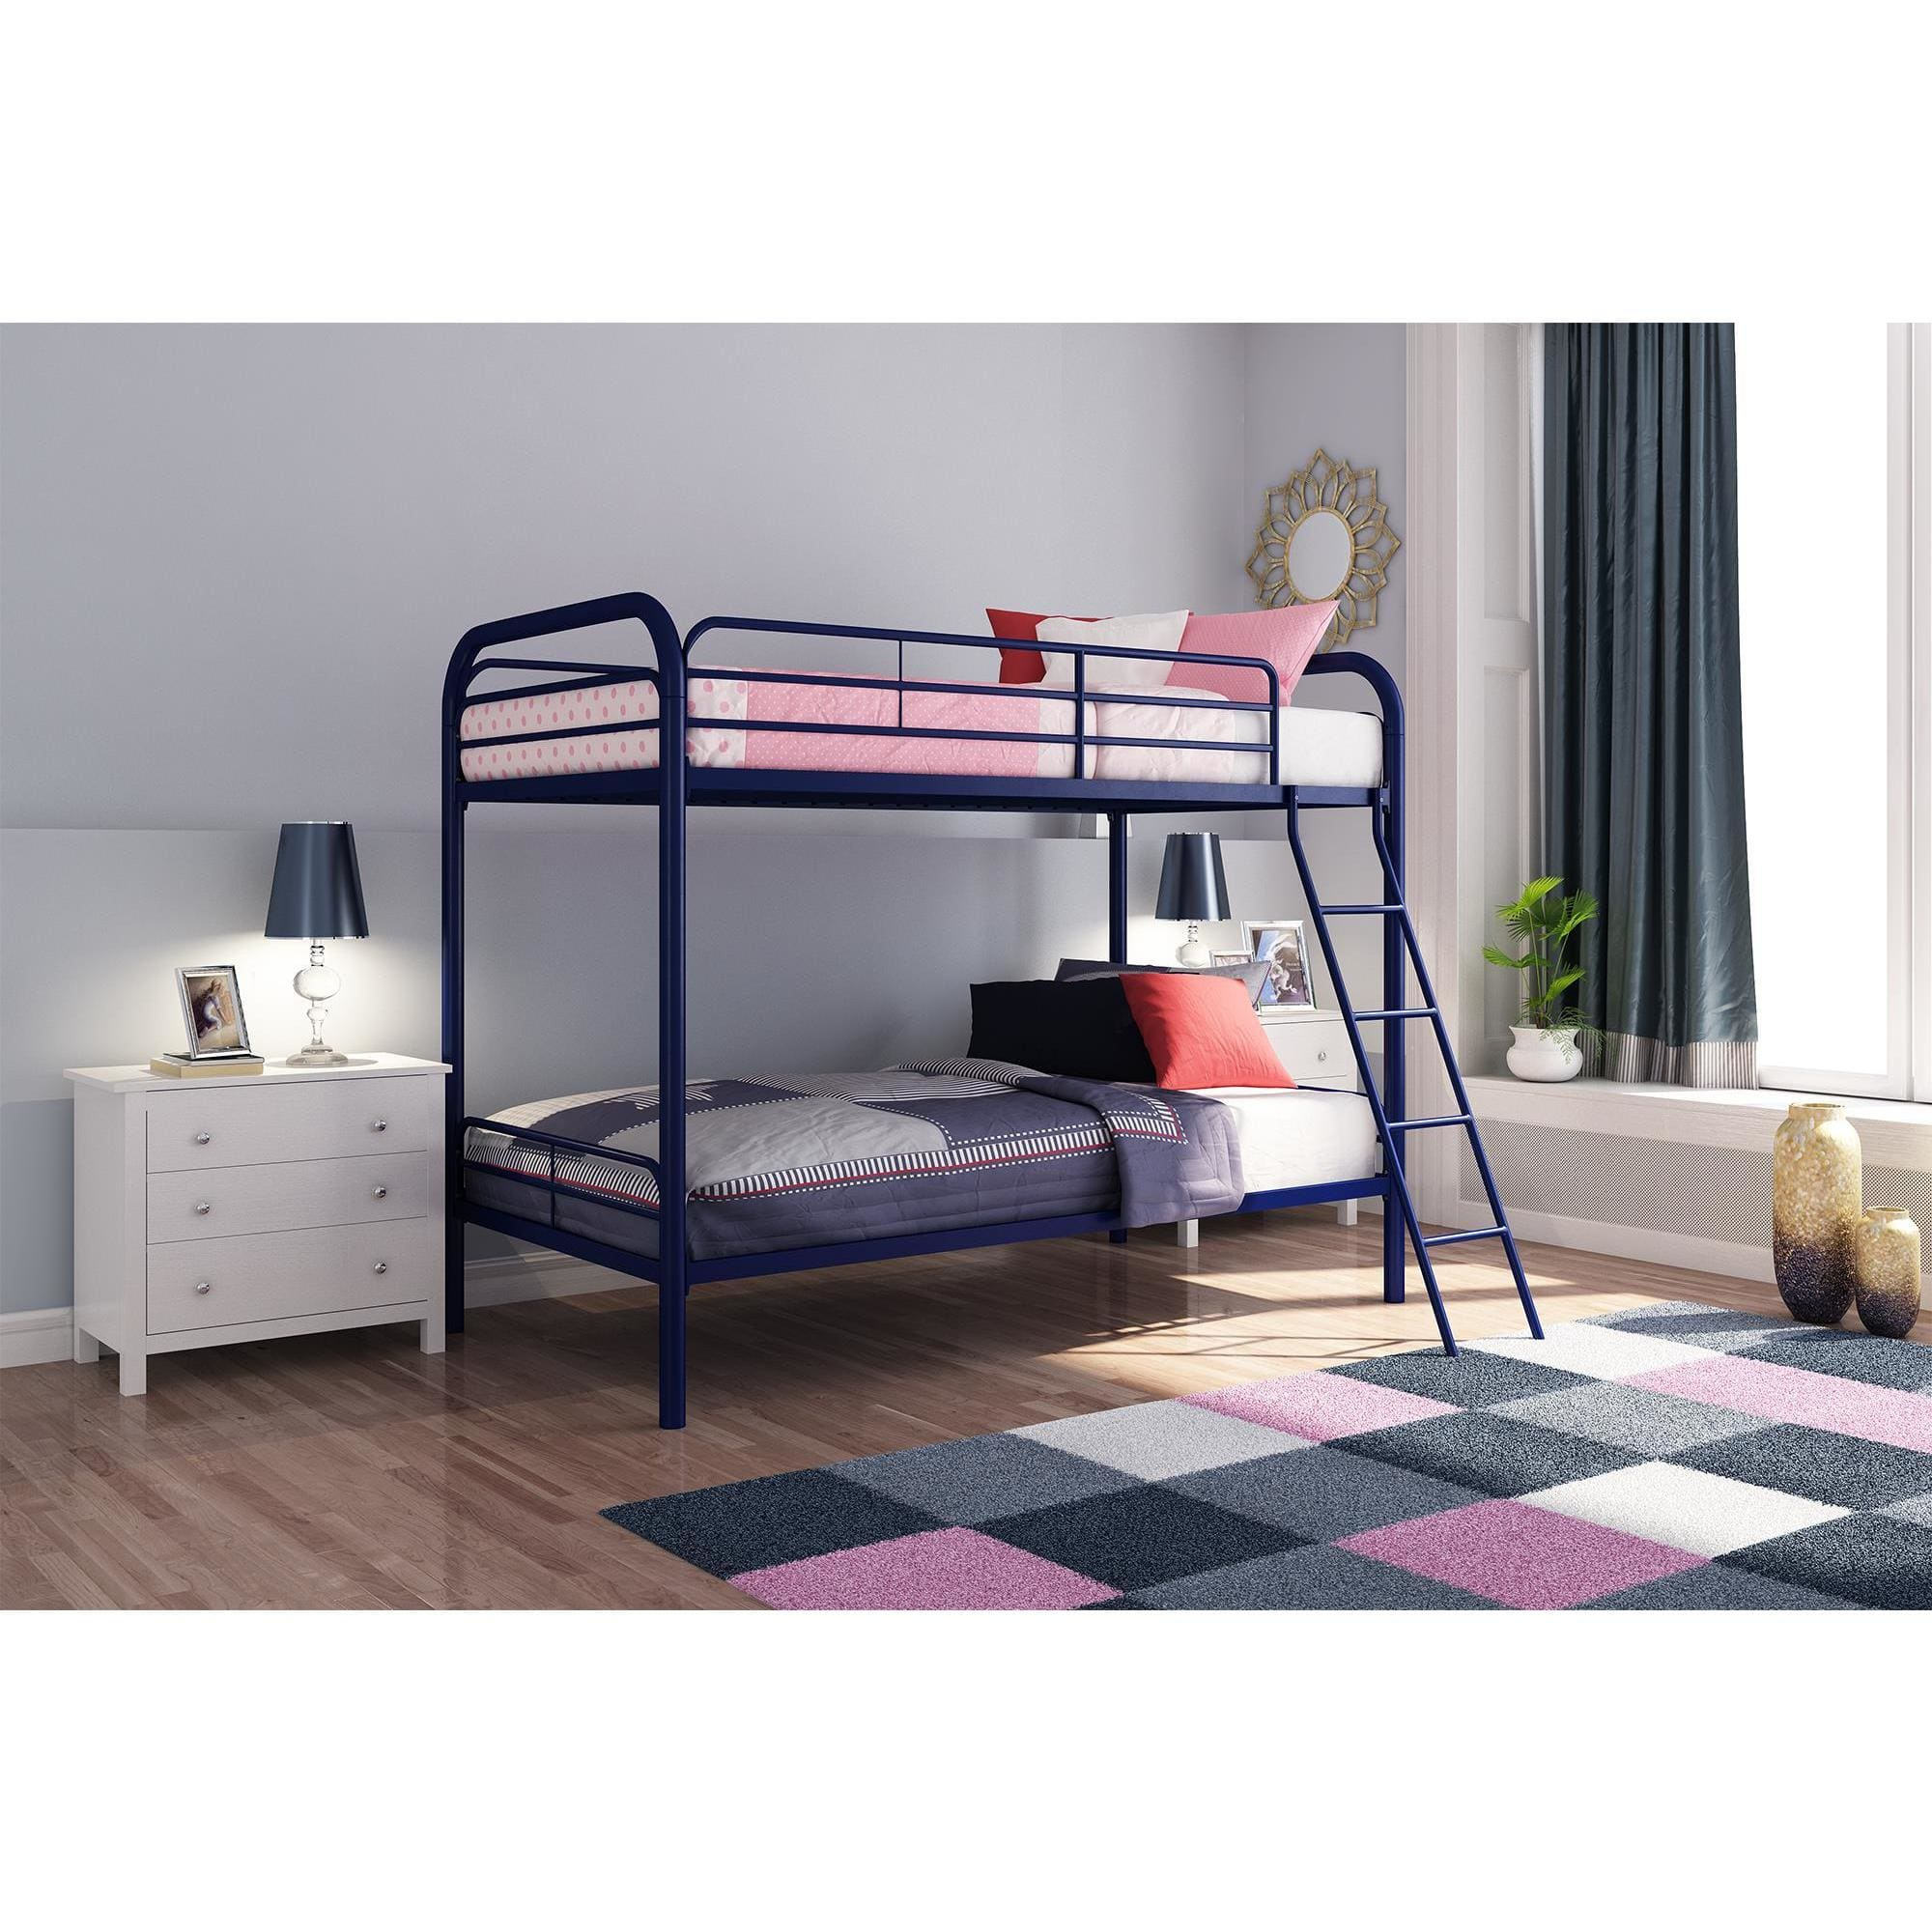 Dhp Twin Over Twin Metal Bunk Bed Frame Multiple Colors Walmart Com